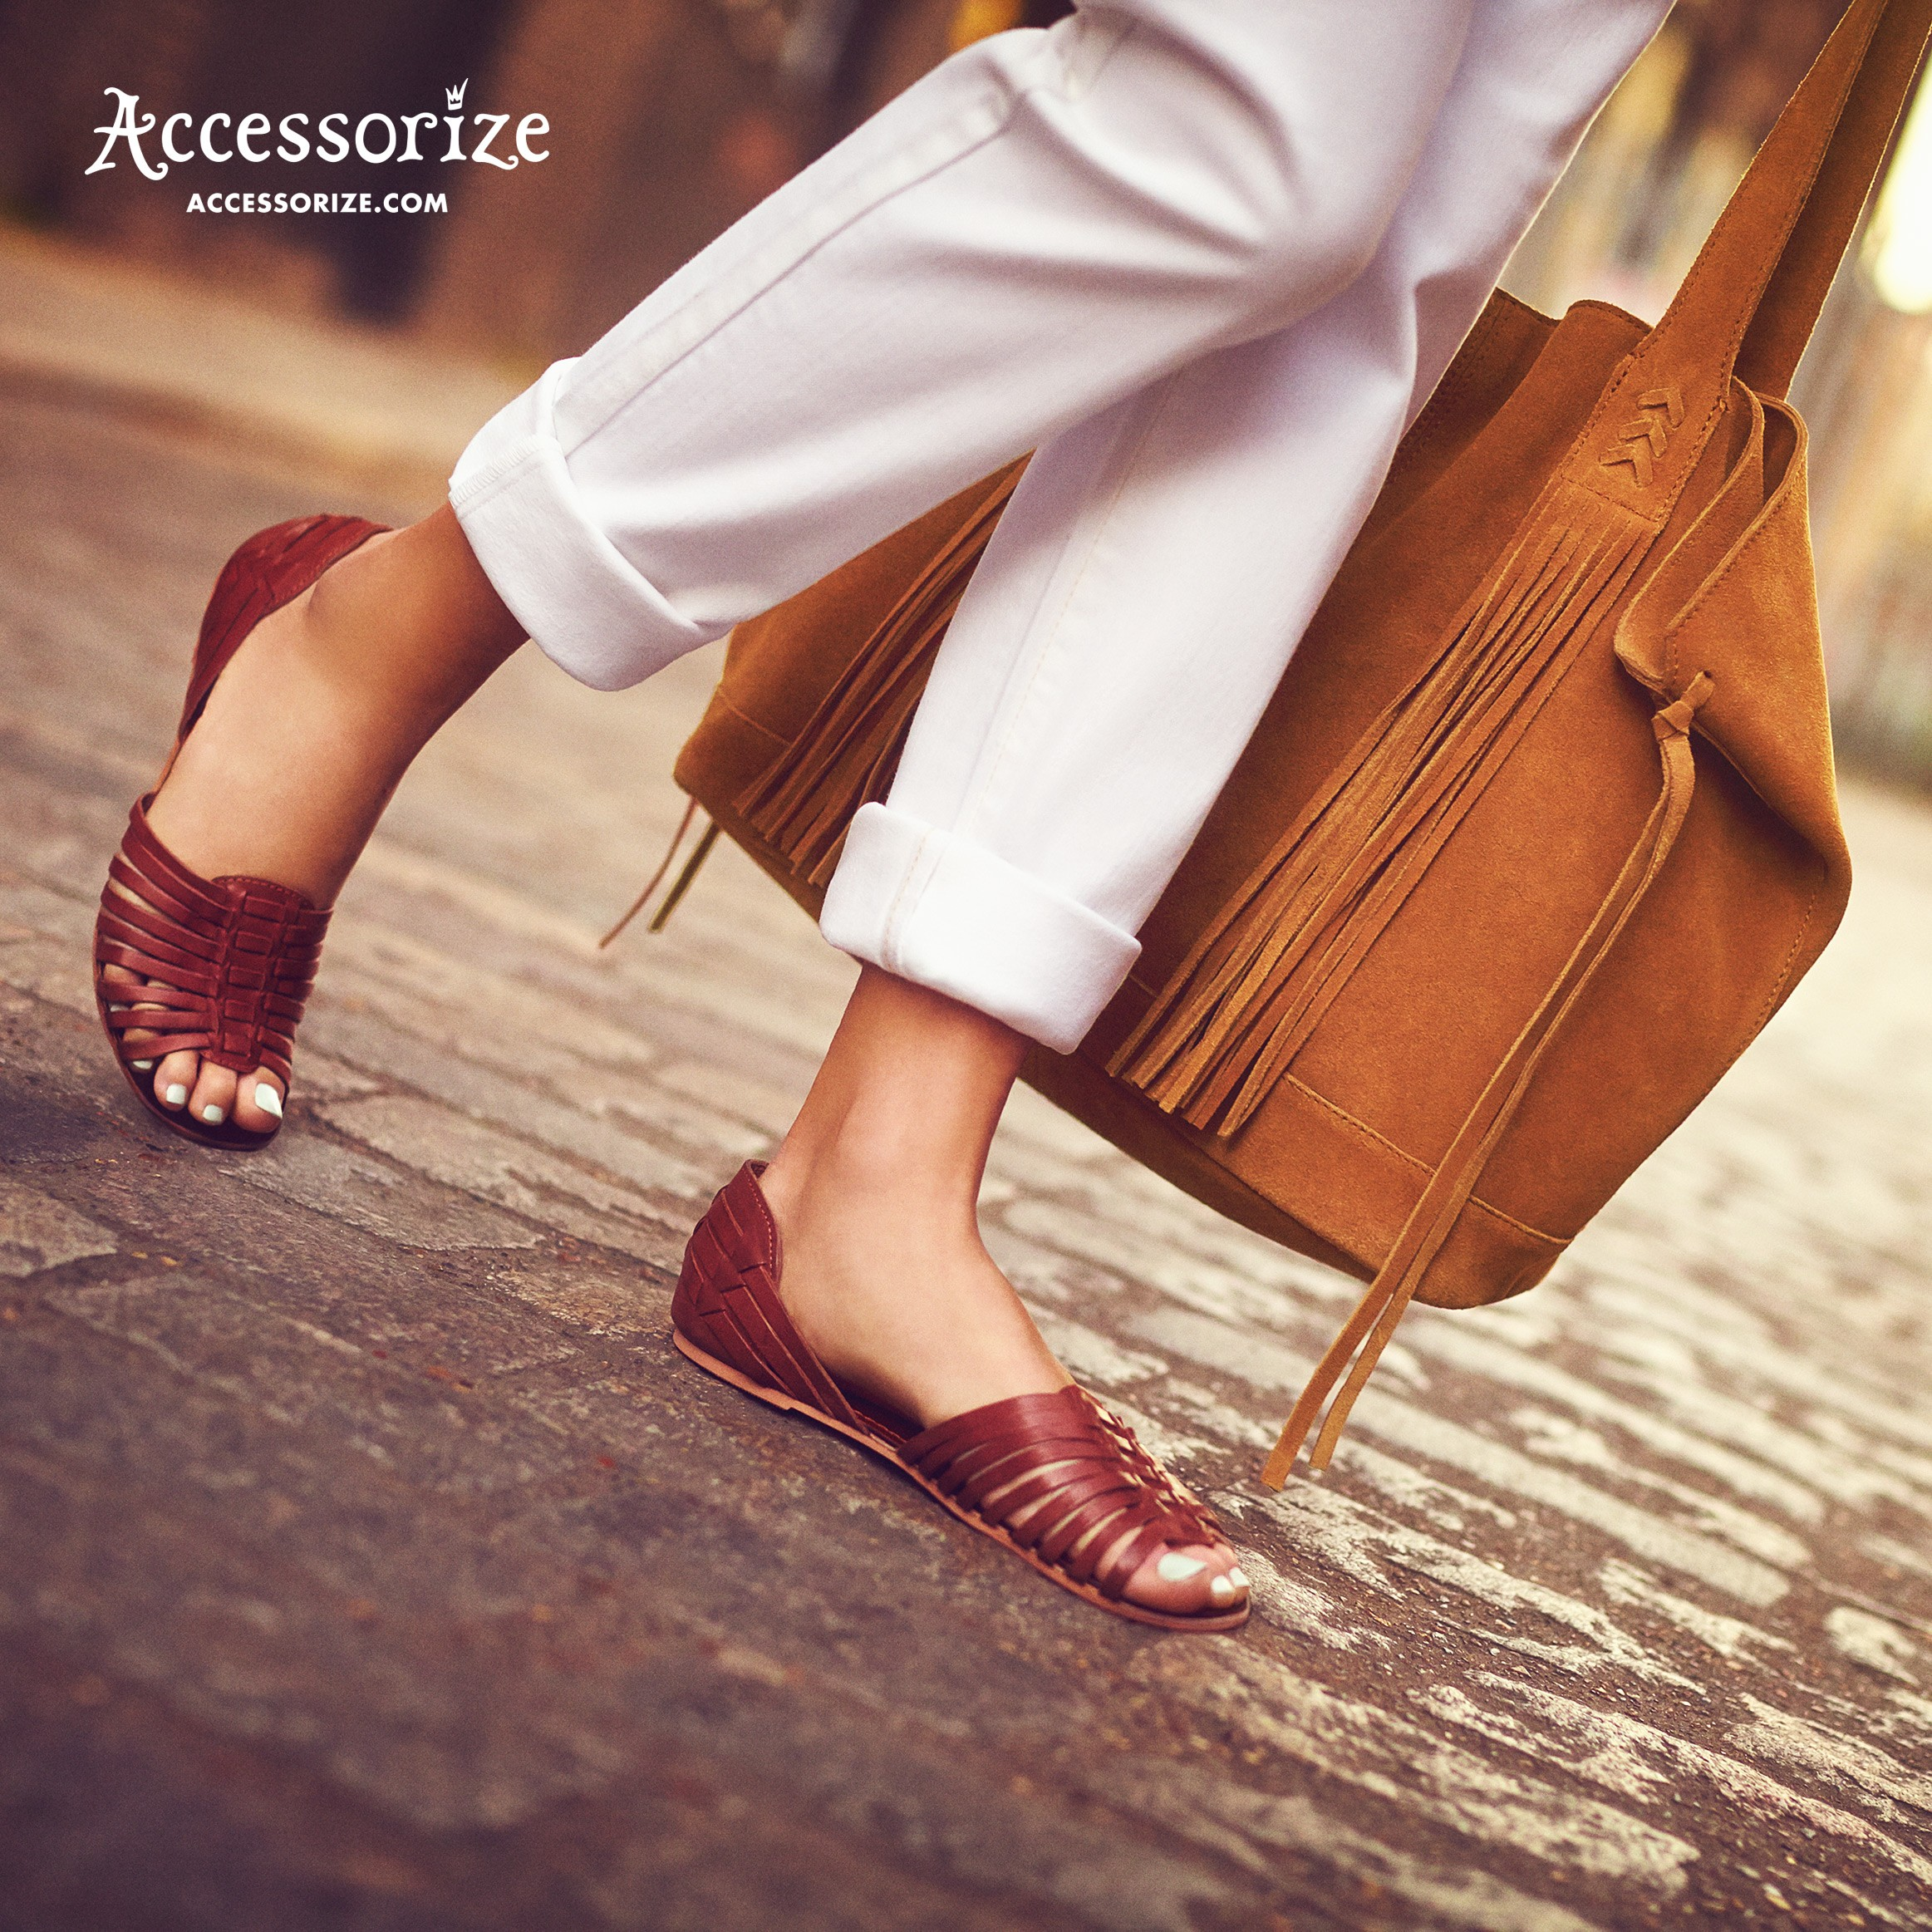 accessorize-campaign-shoes-still-life-watches-sunshine-summer-ruth-rose-4.jpg